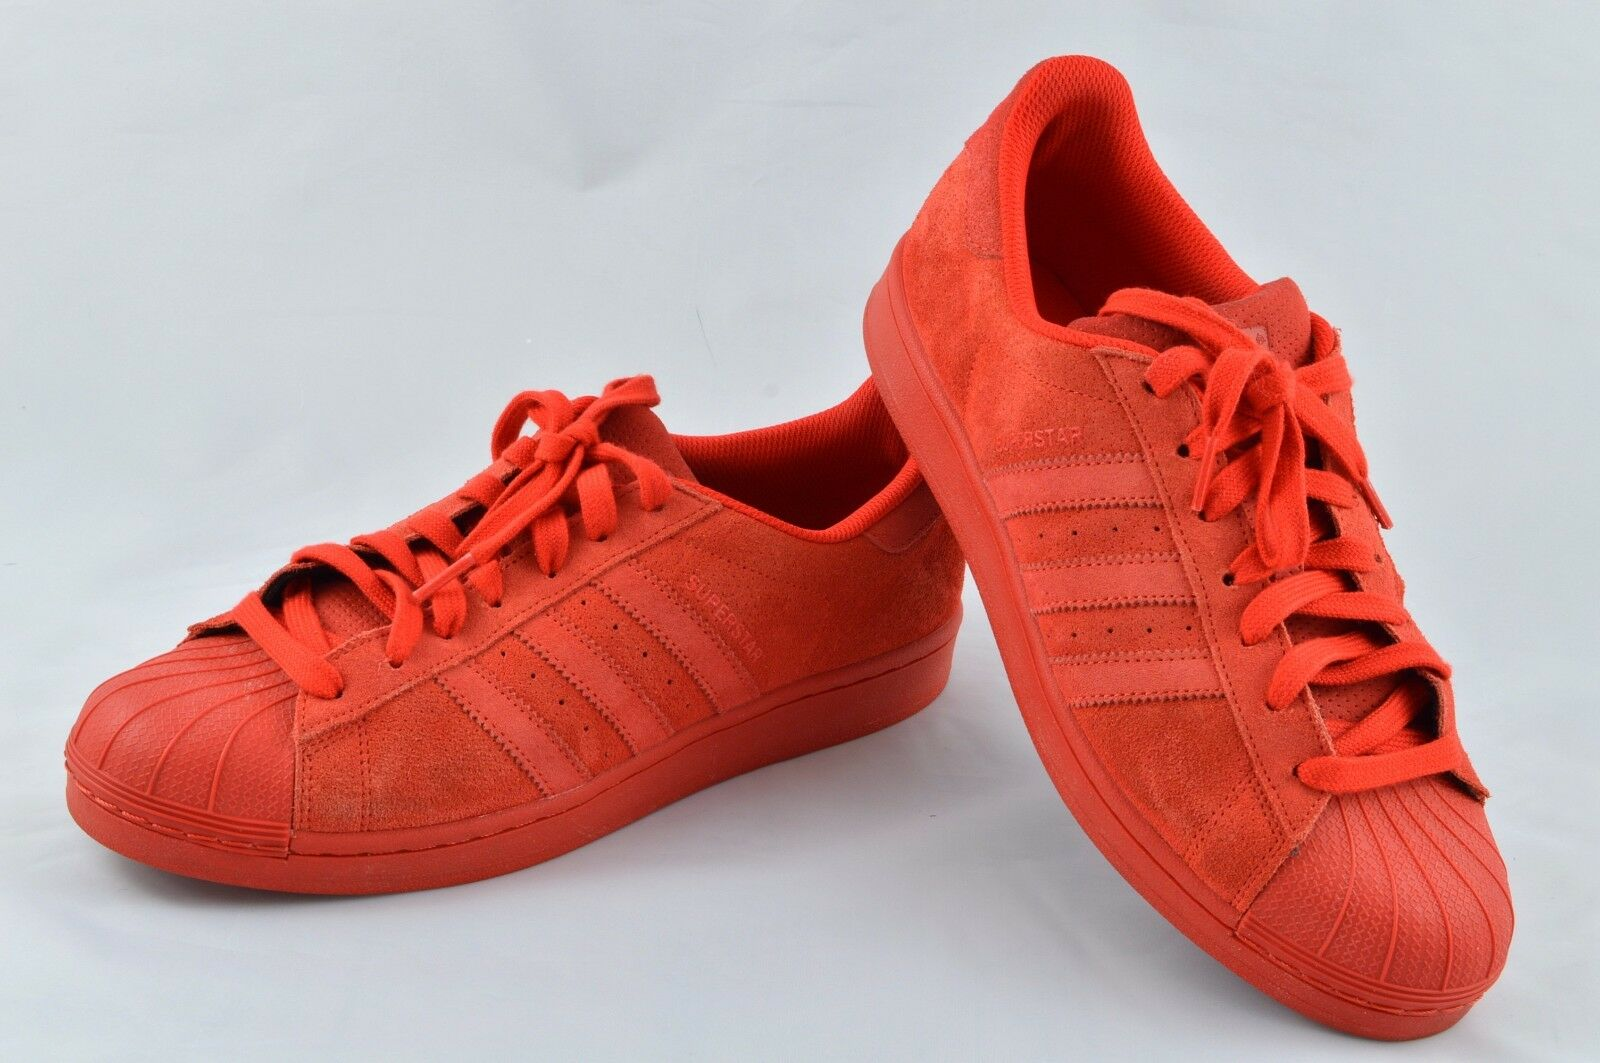 Adidas Superstar RT Baskets Homme Taille 9 (euro 43 1/3)